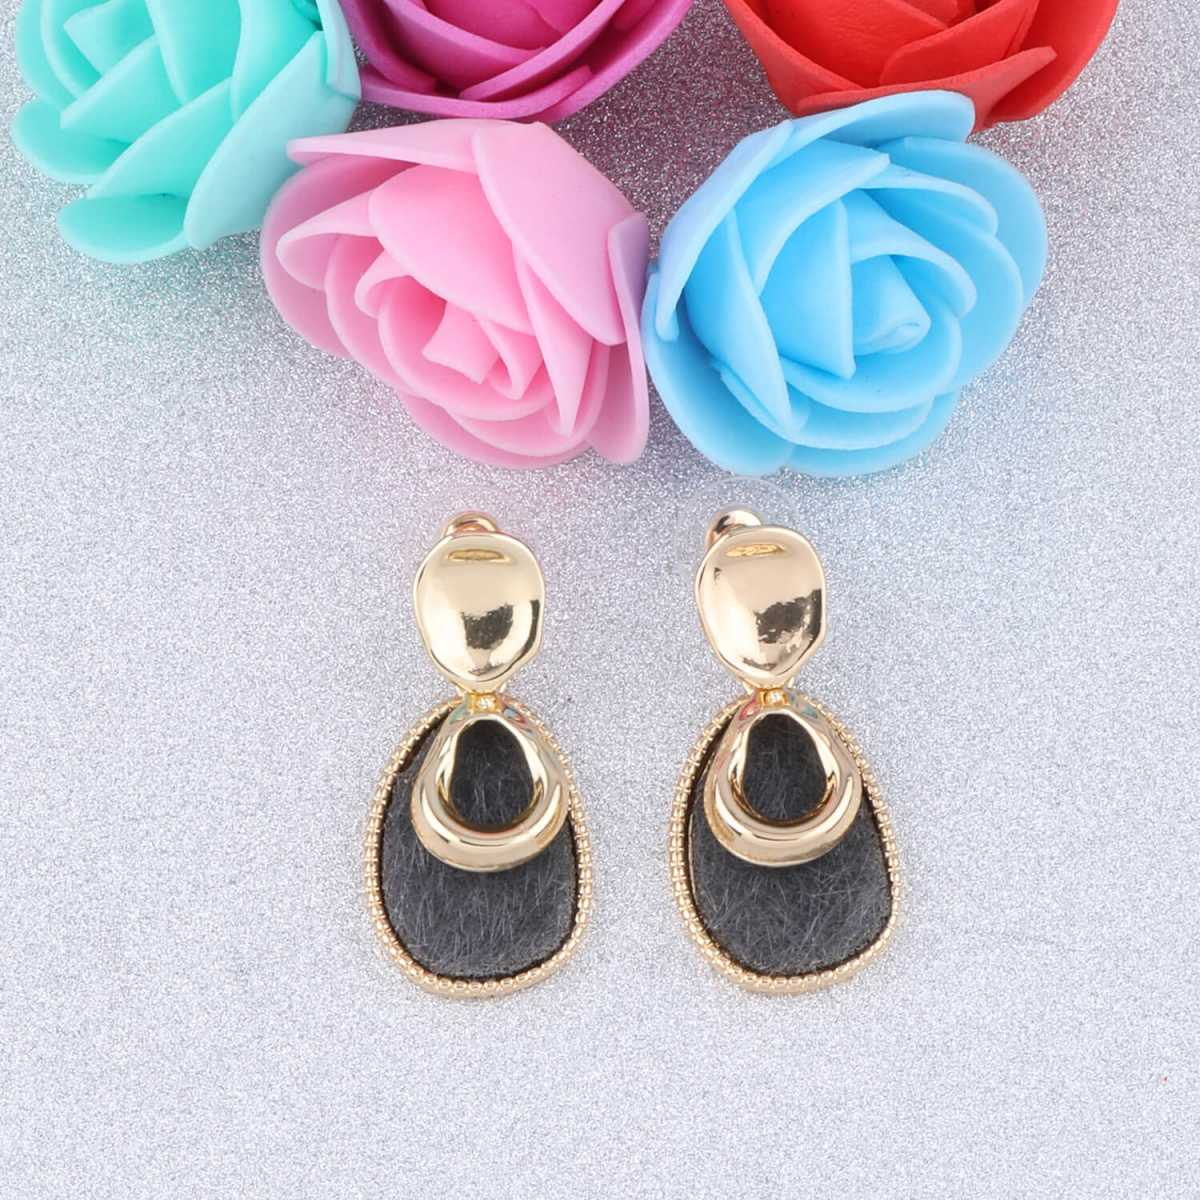 SILVER SHINE Exclusive Gold Plated Charm Long  Earring For Women Girl